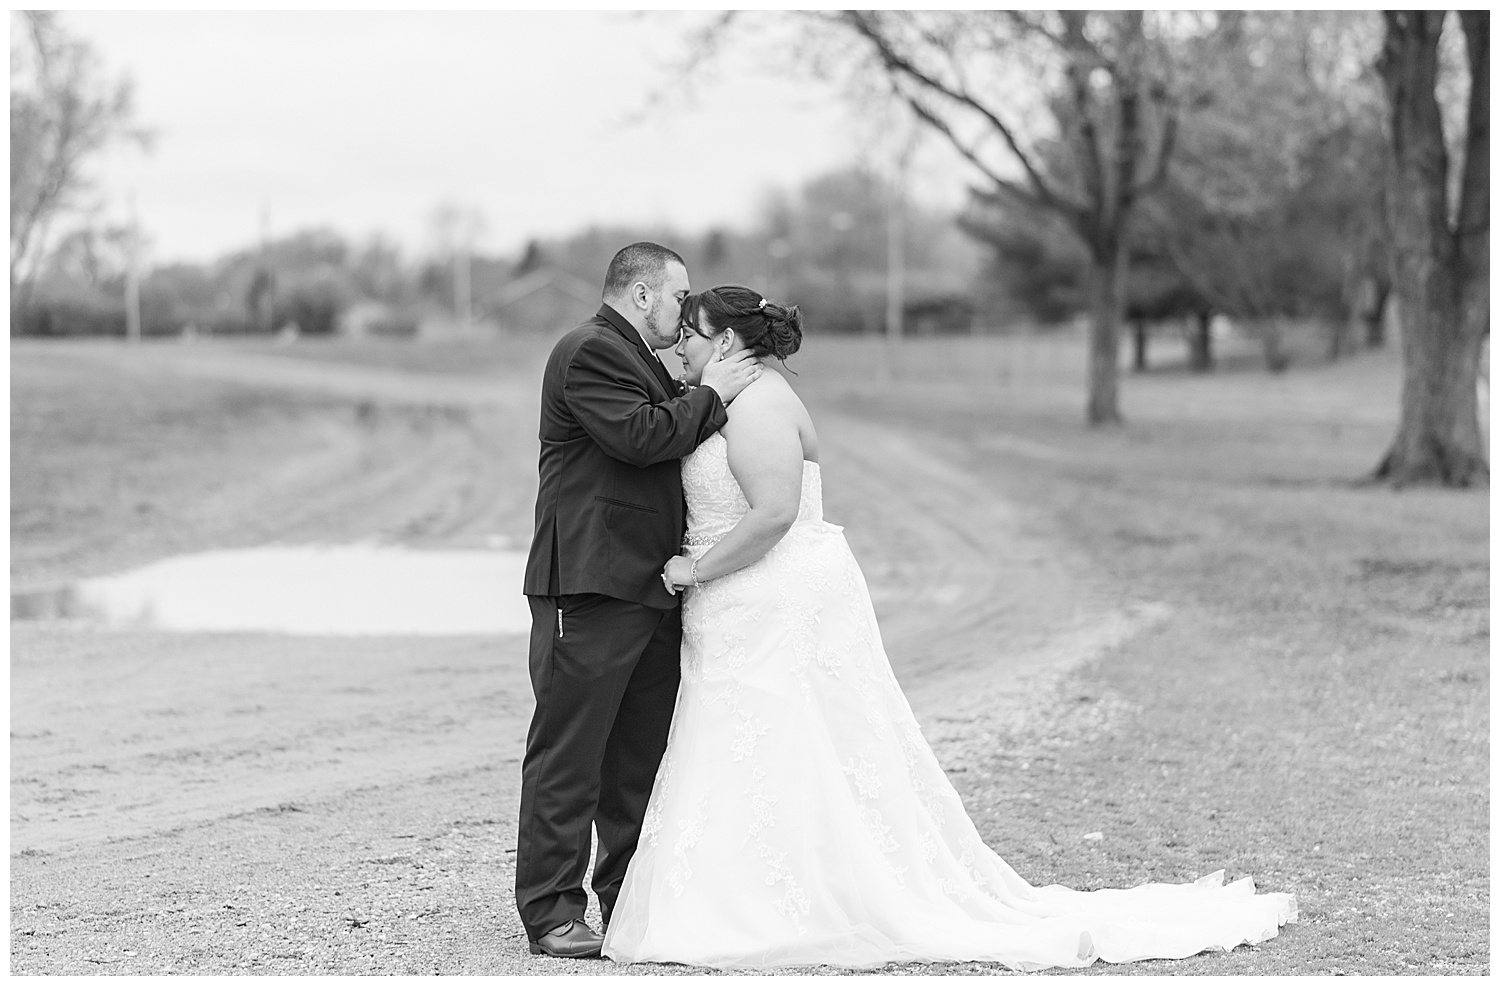 Vendors who made this day possible:  Ceremony: First United Methodist Church - Troy, OH  Reception: Duke Lundgard Building - Troy, OH   Catering: Batdor's Red Barn Catering  Florist: Trojan Florist & Gifts  DJ: Bruce Adamson  Wedding Dress: David's Bridal